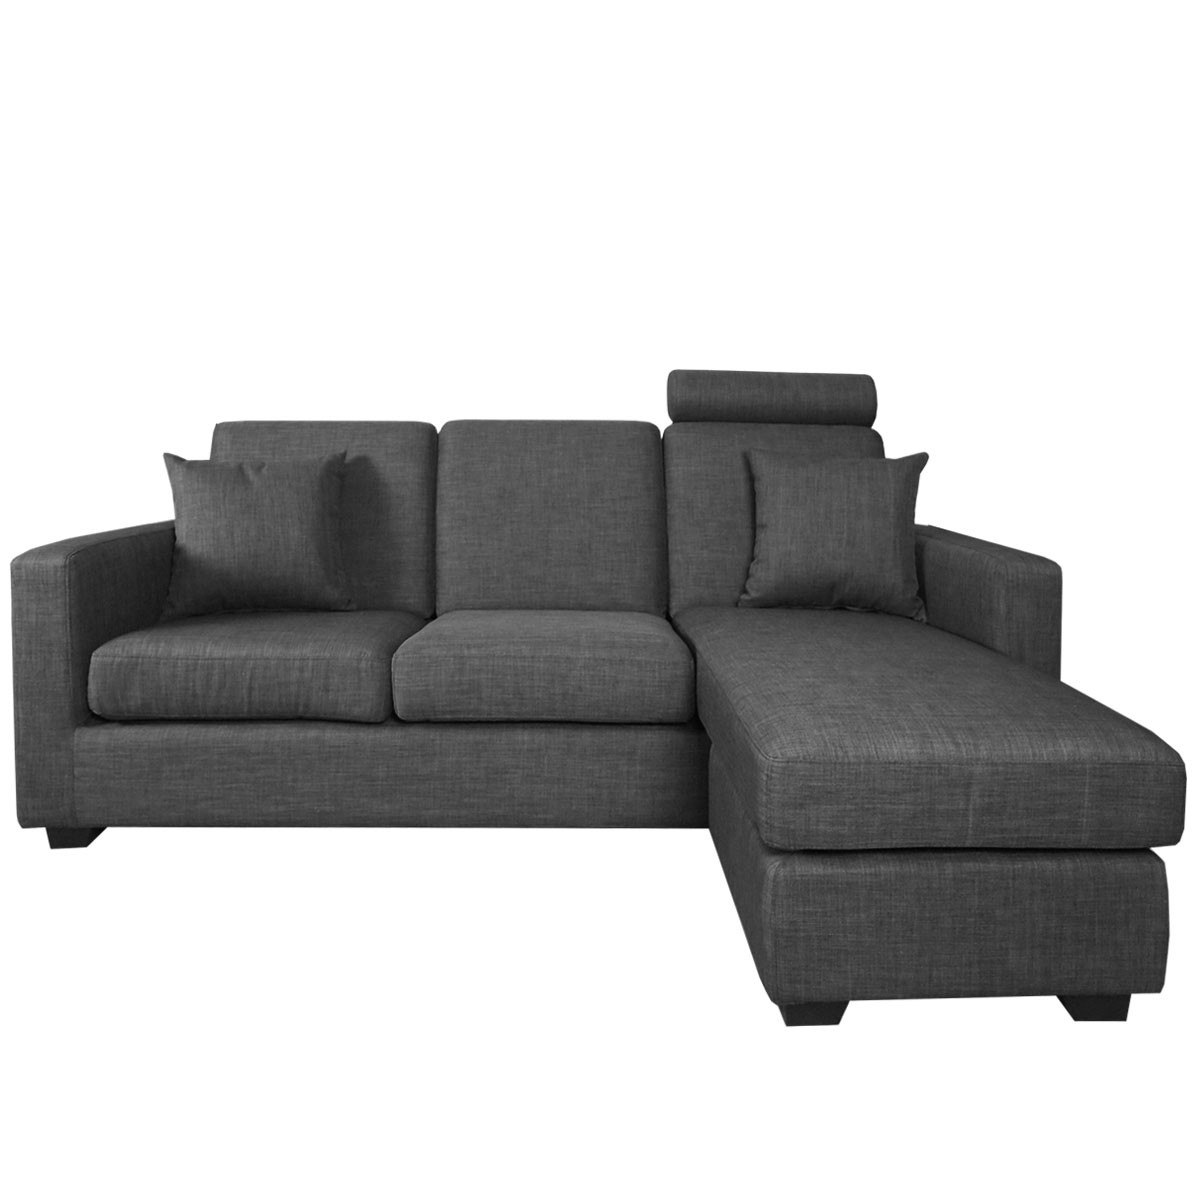 Sofa beds richmond for Sofa bed 5 in 1 murah